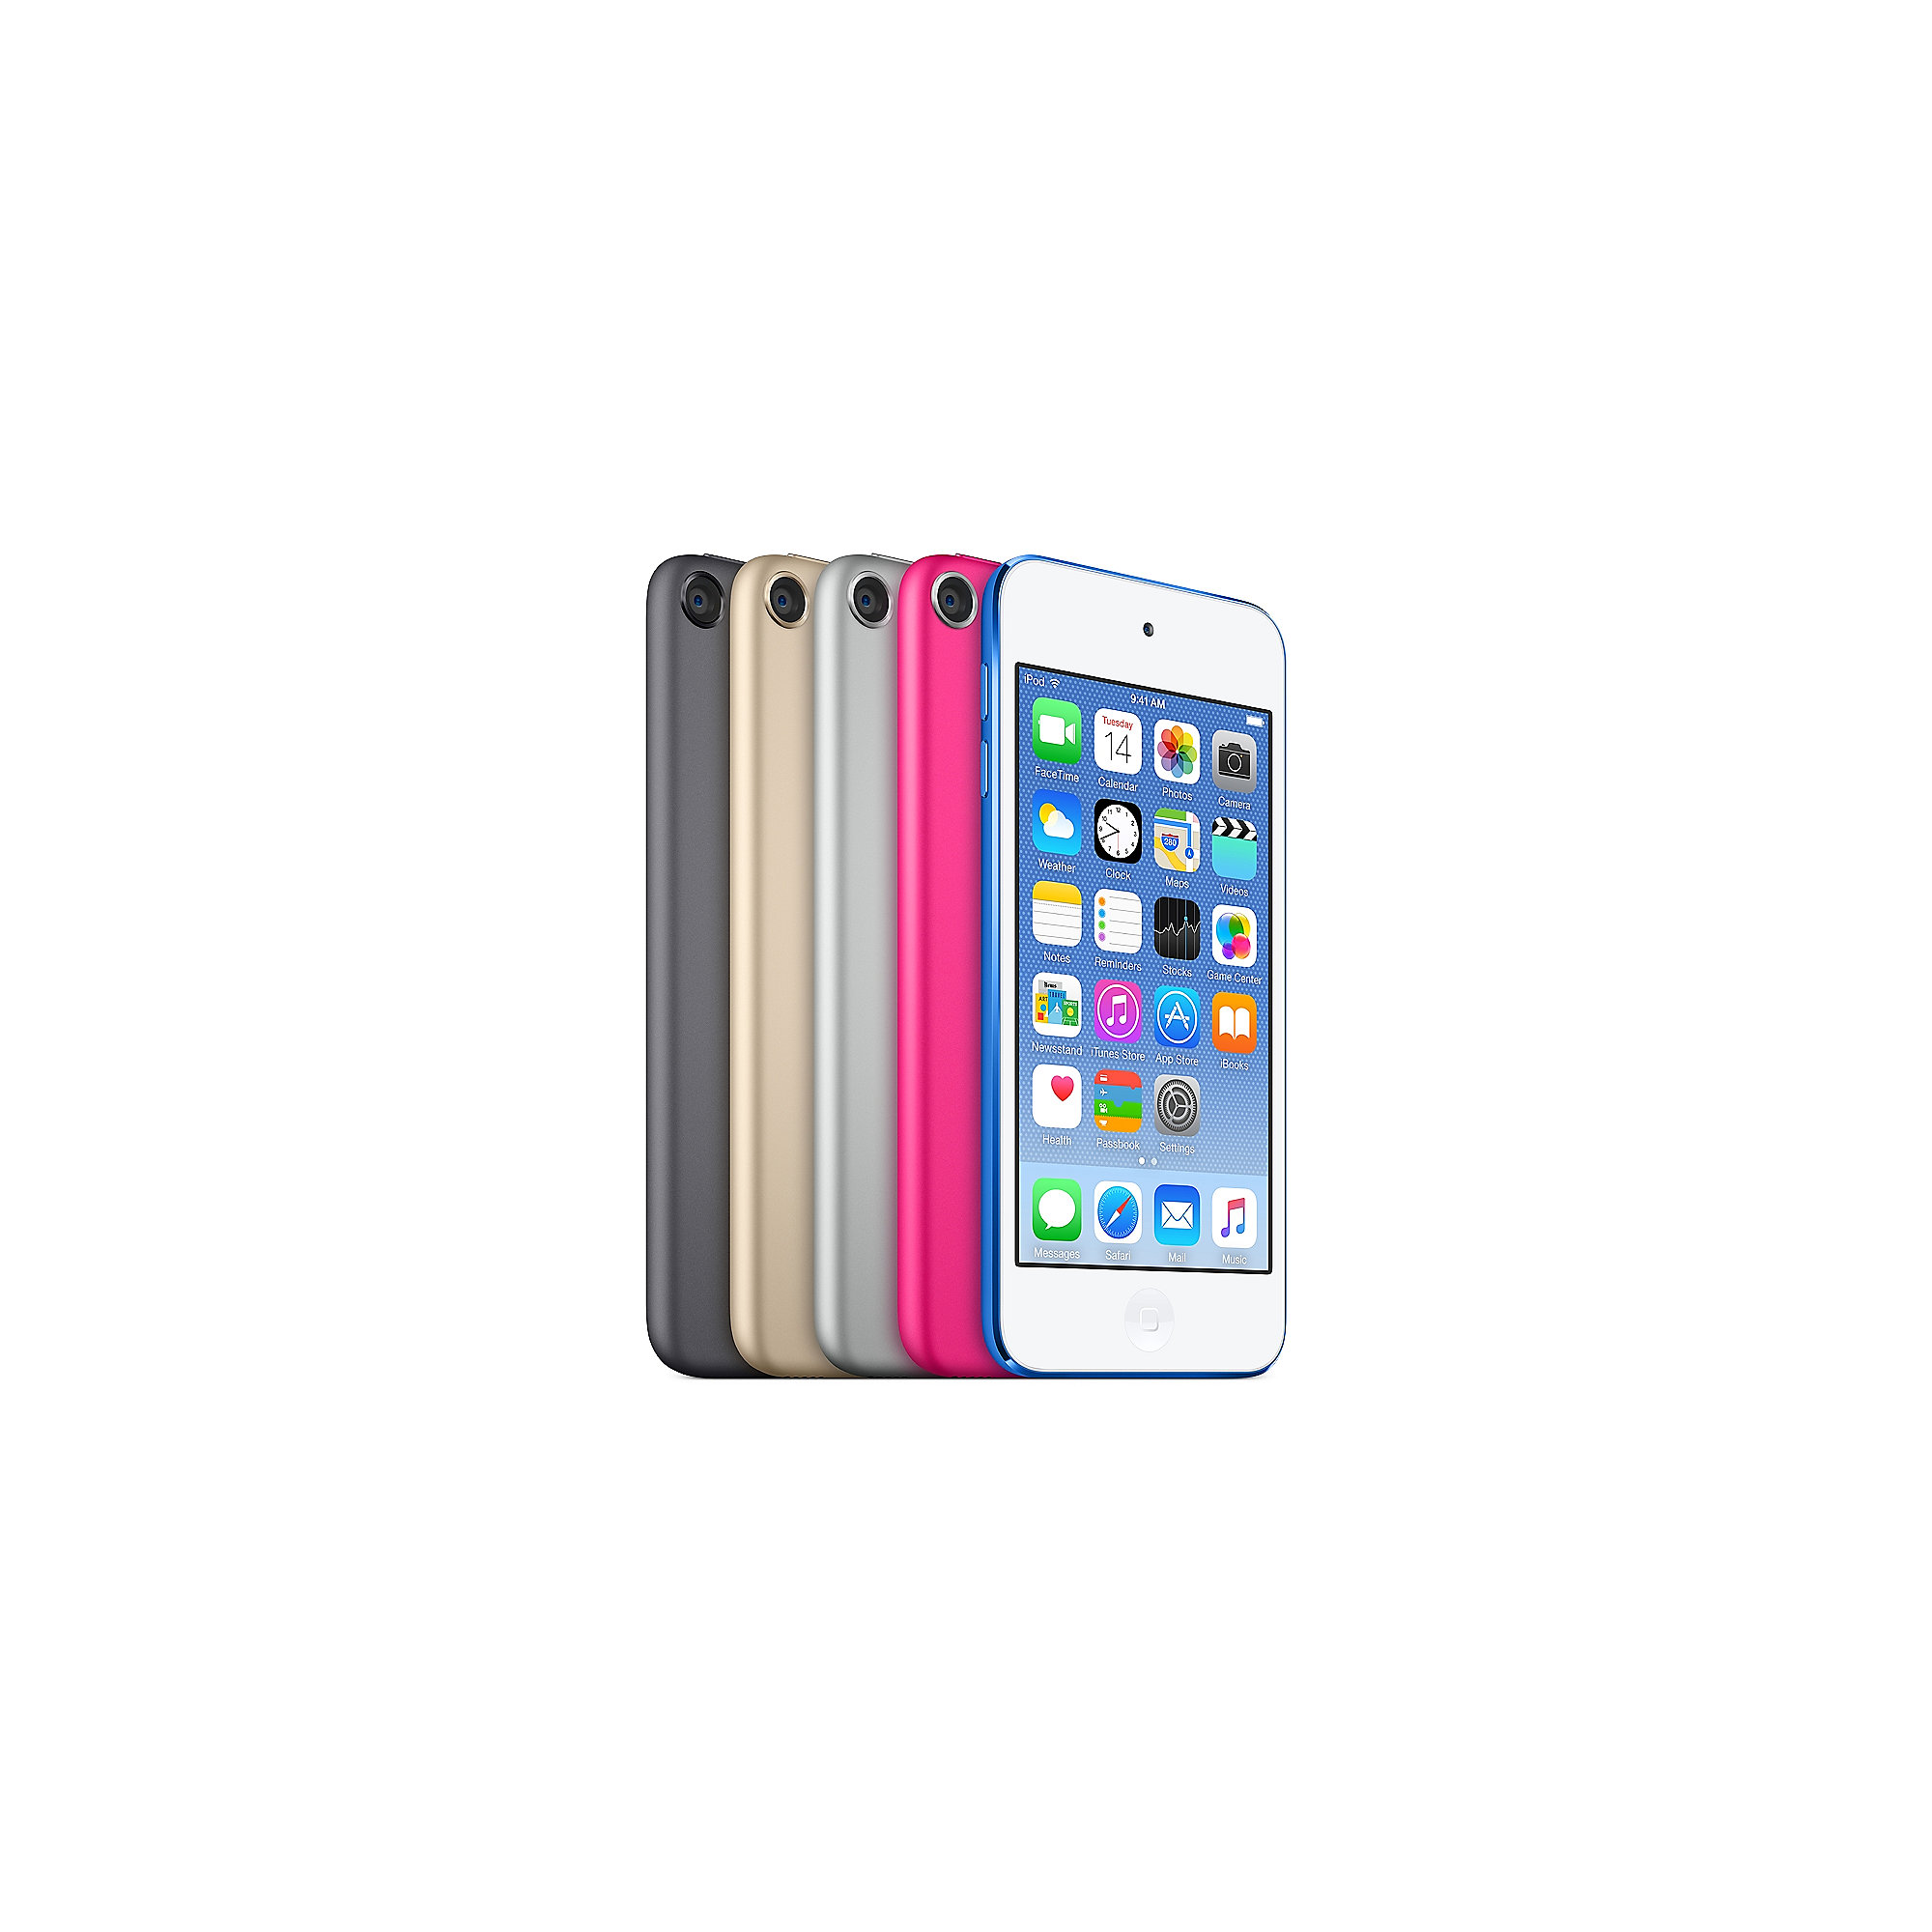 Apple iPod touch 32 GB Pink - MKHQ2FD/A